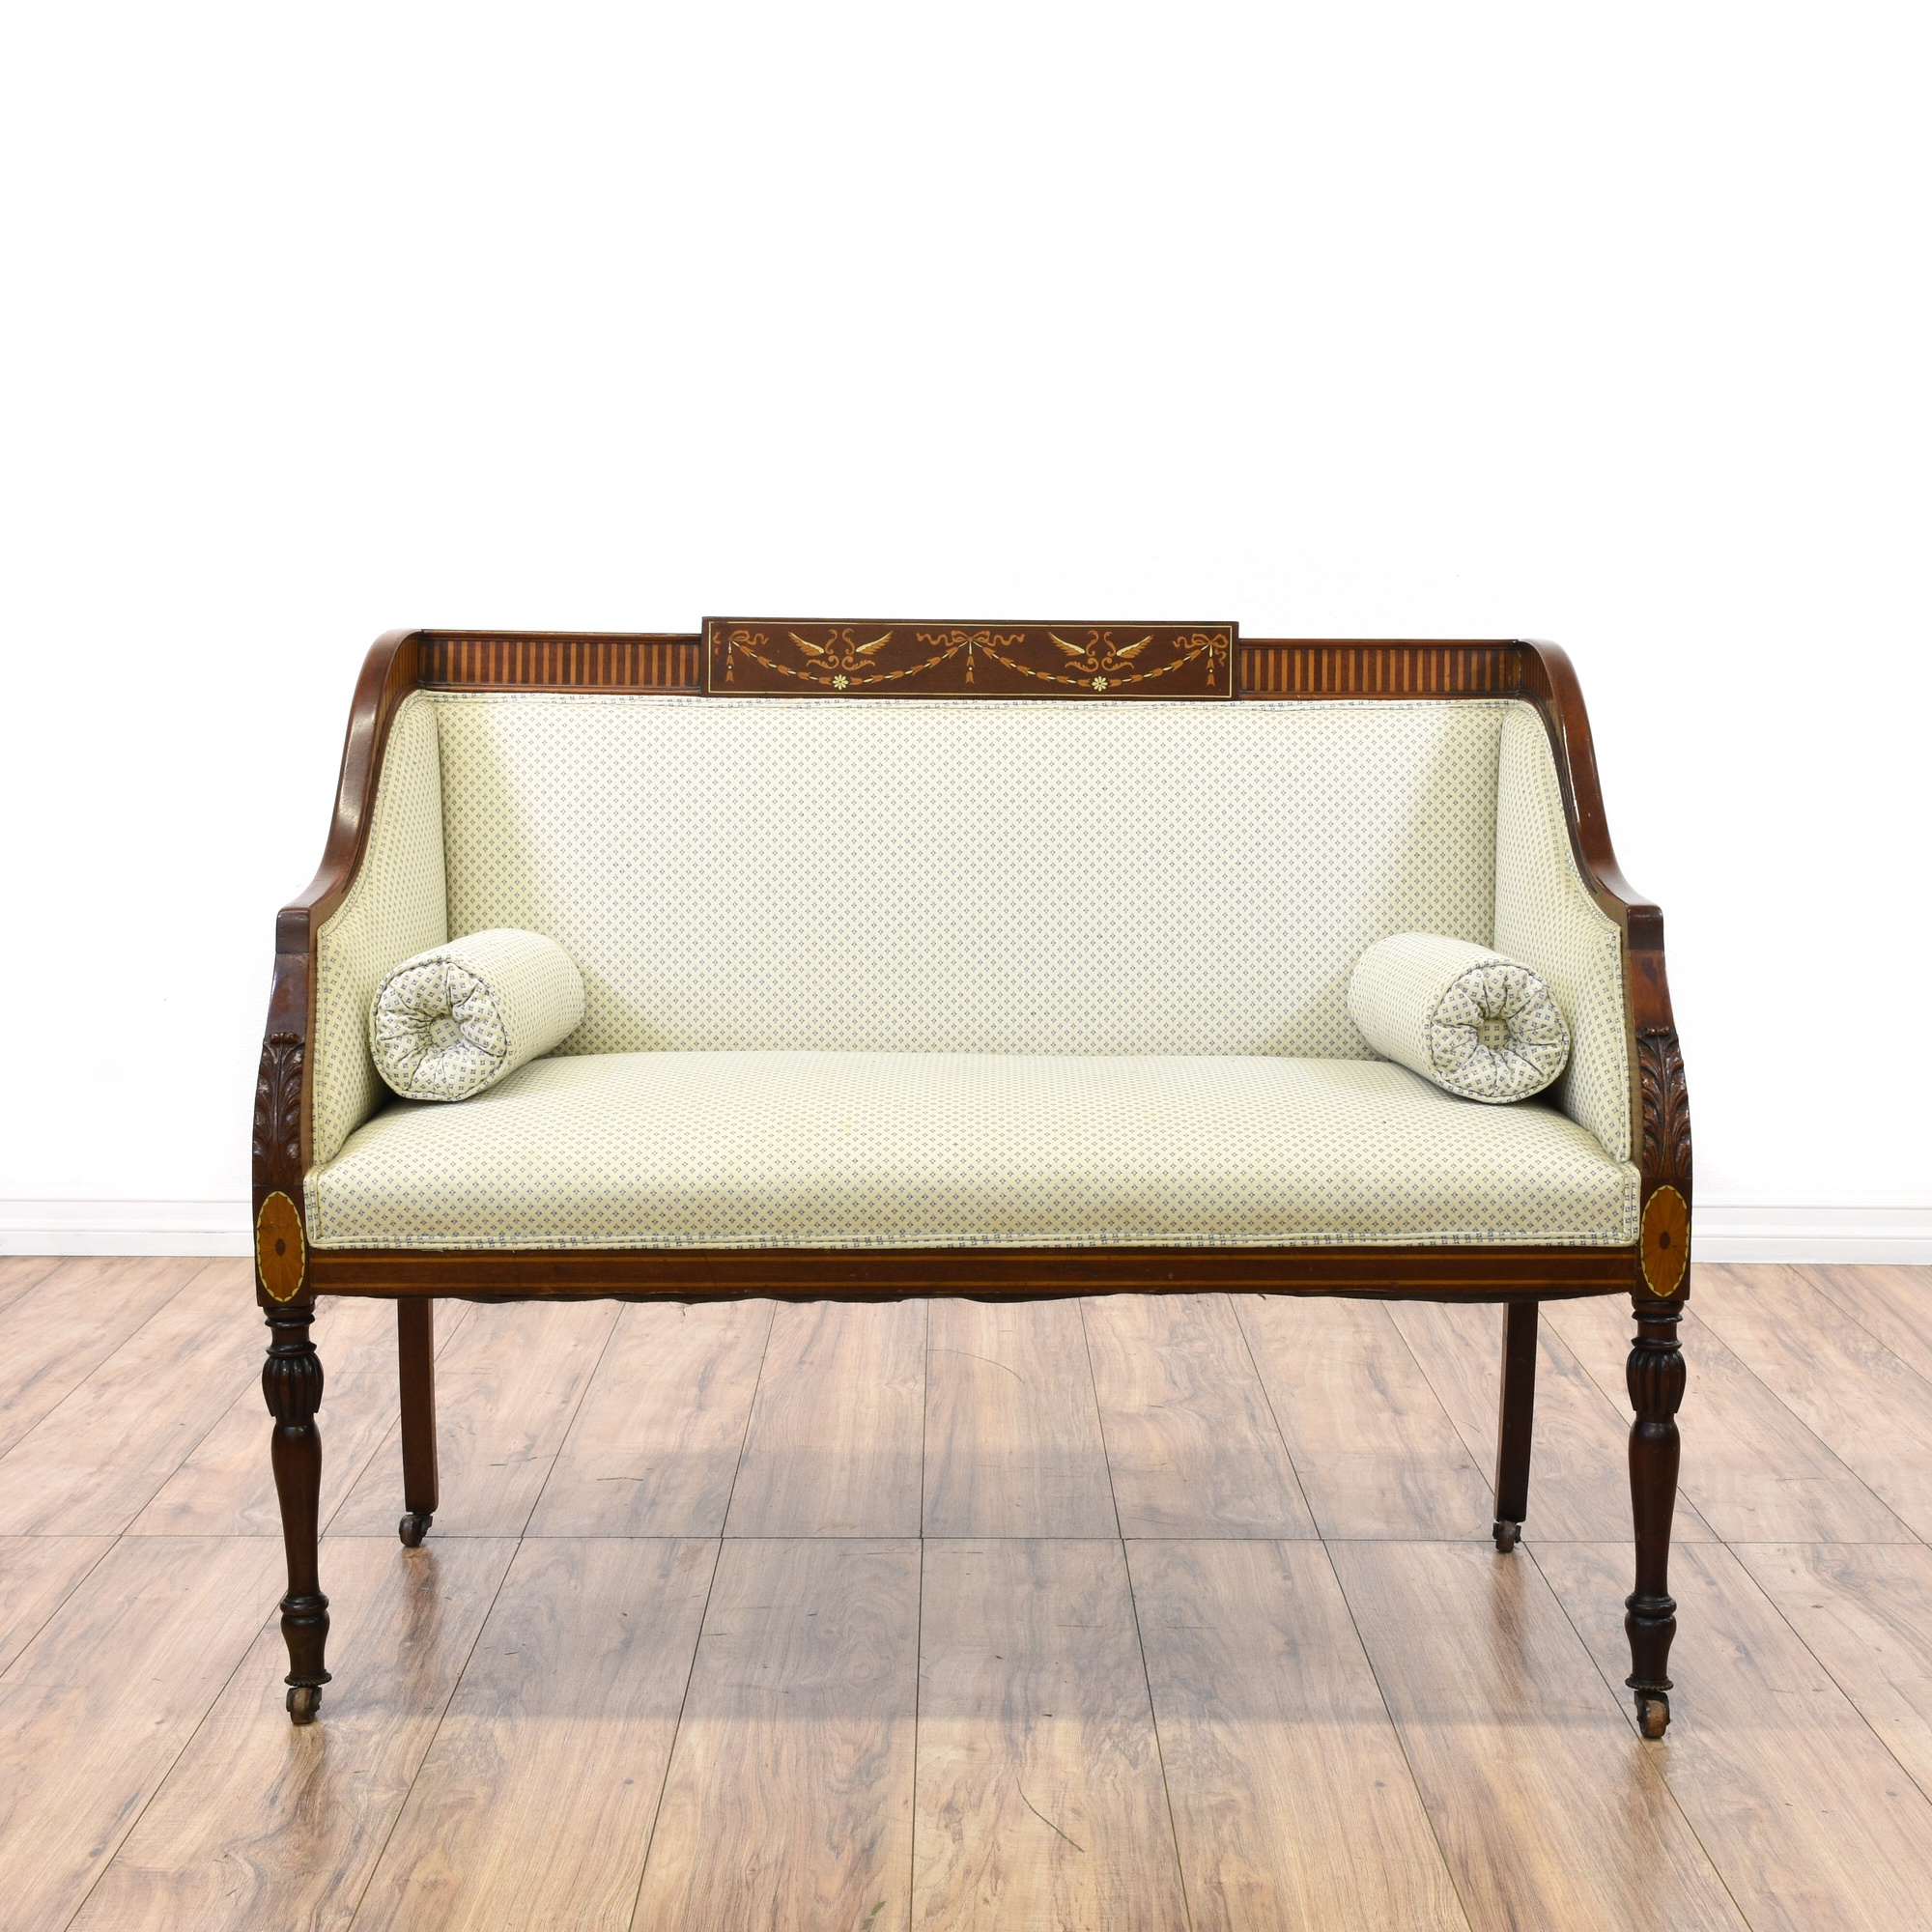 Carved Upholstered White Loveseat Settee Sofa Loveseat Vintage Furniture San Diego Los Angeles